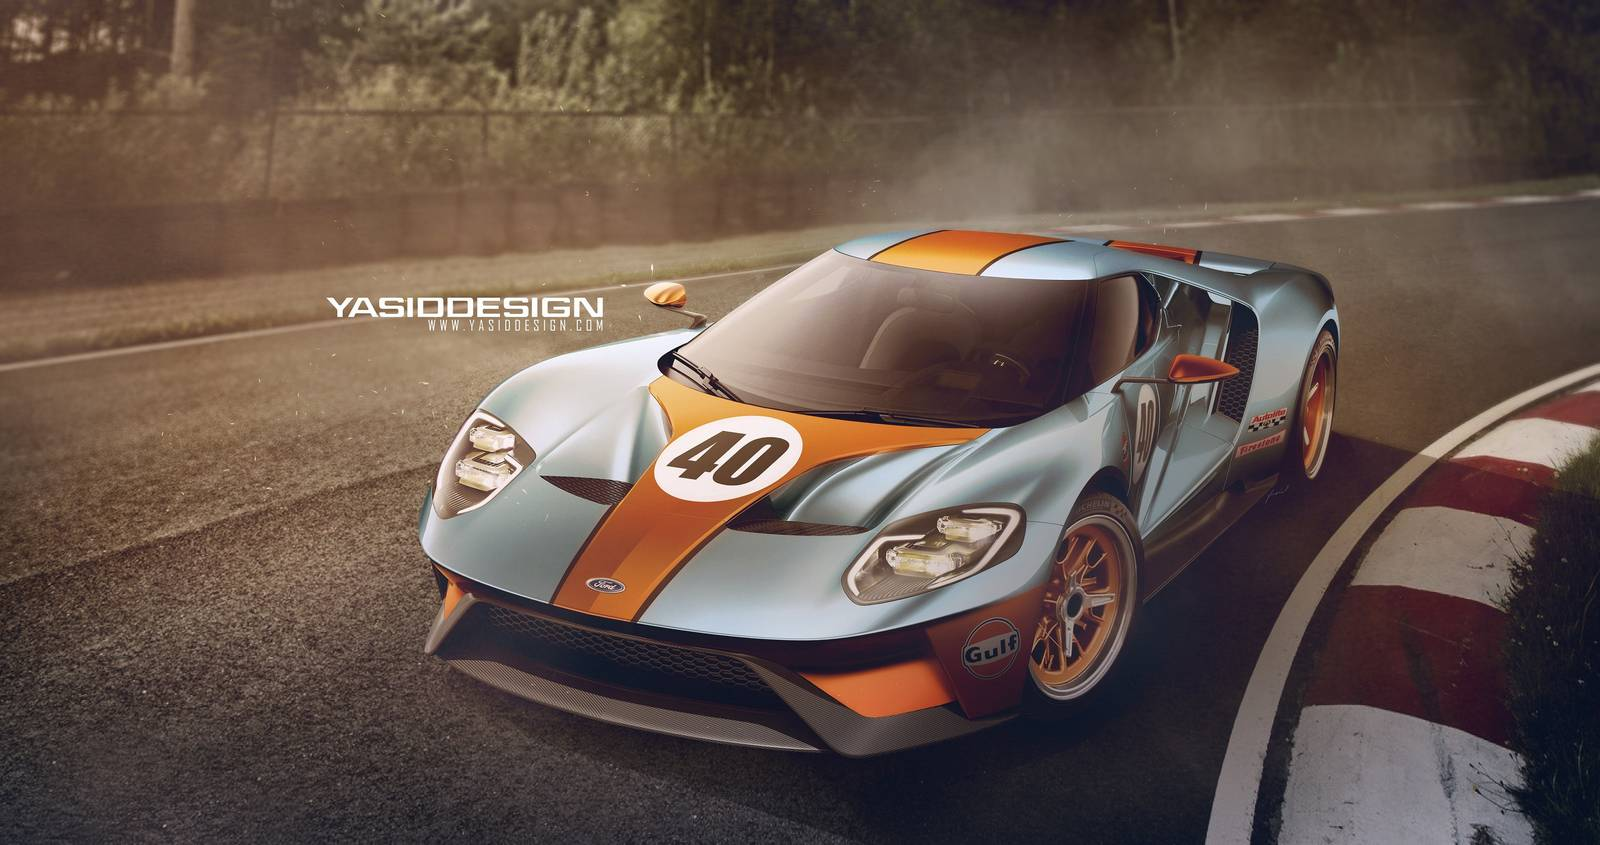 2016 ford gt gulf with Render 2016 Ford Gt Gulf Edition on Ford Gt 40 1969 Alain Jamar furthermore Ford Now Taking Orders New Gt Sports Car besides 333 Ford Gt40 Wallpaper 7 moreover Porsche 917 The Best Everywhere likewise Lemans2015.